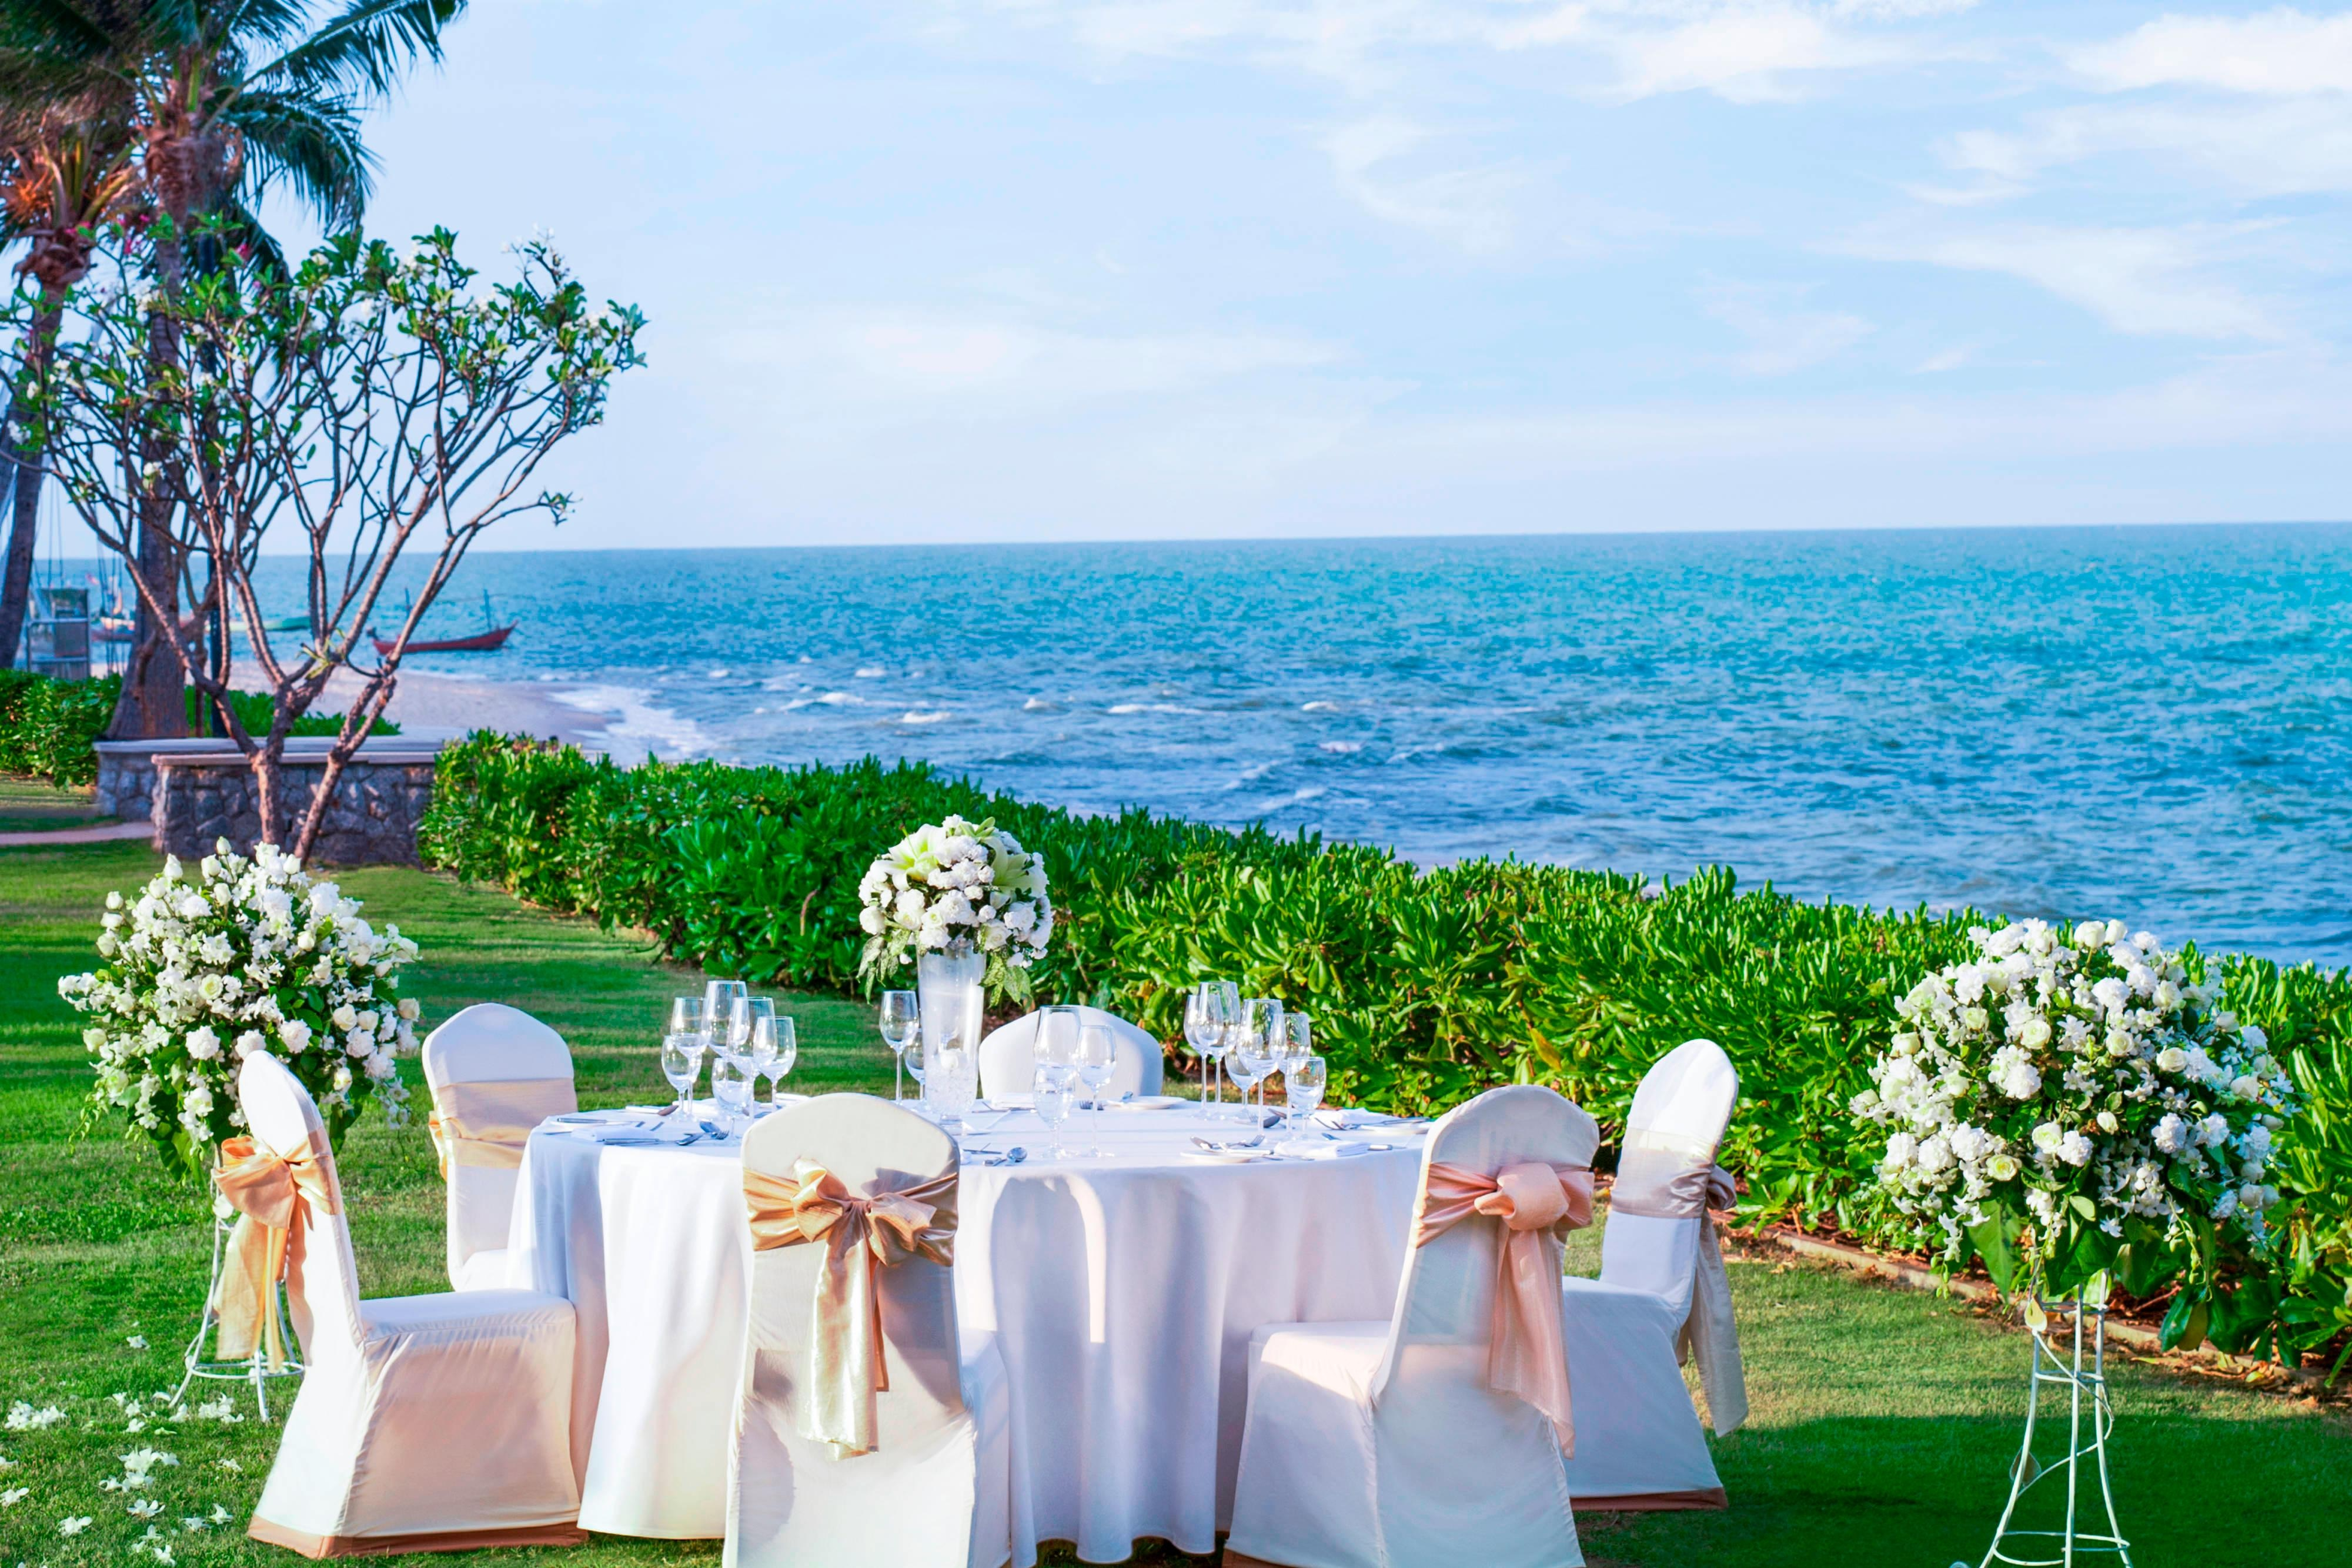 Wedding Reception by the Sea